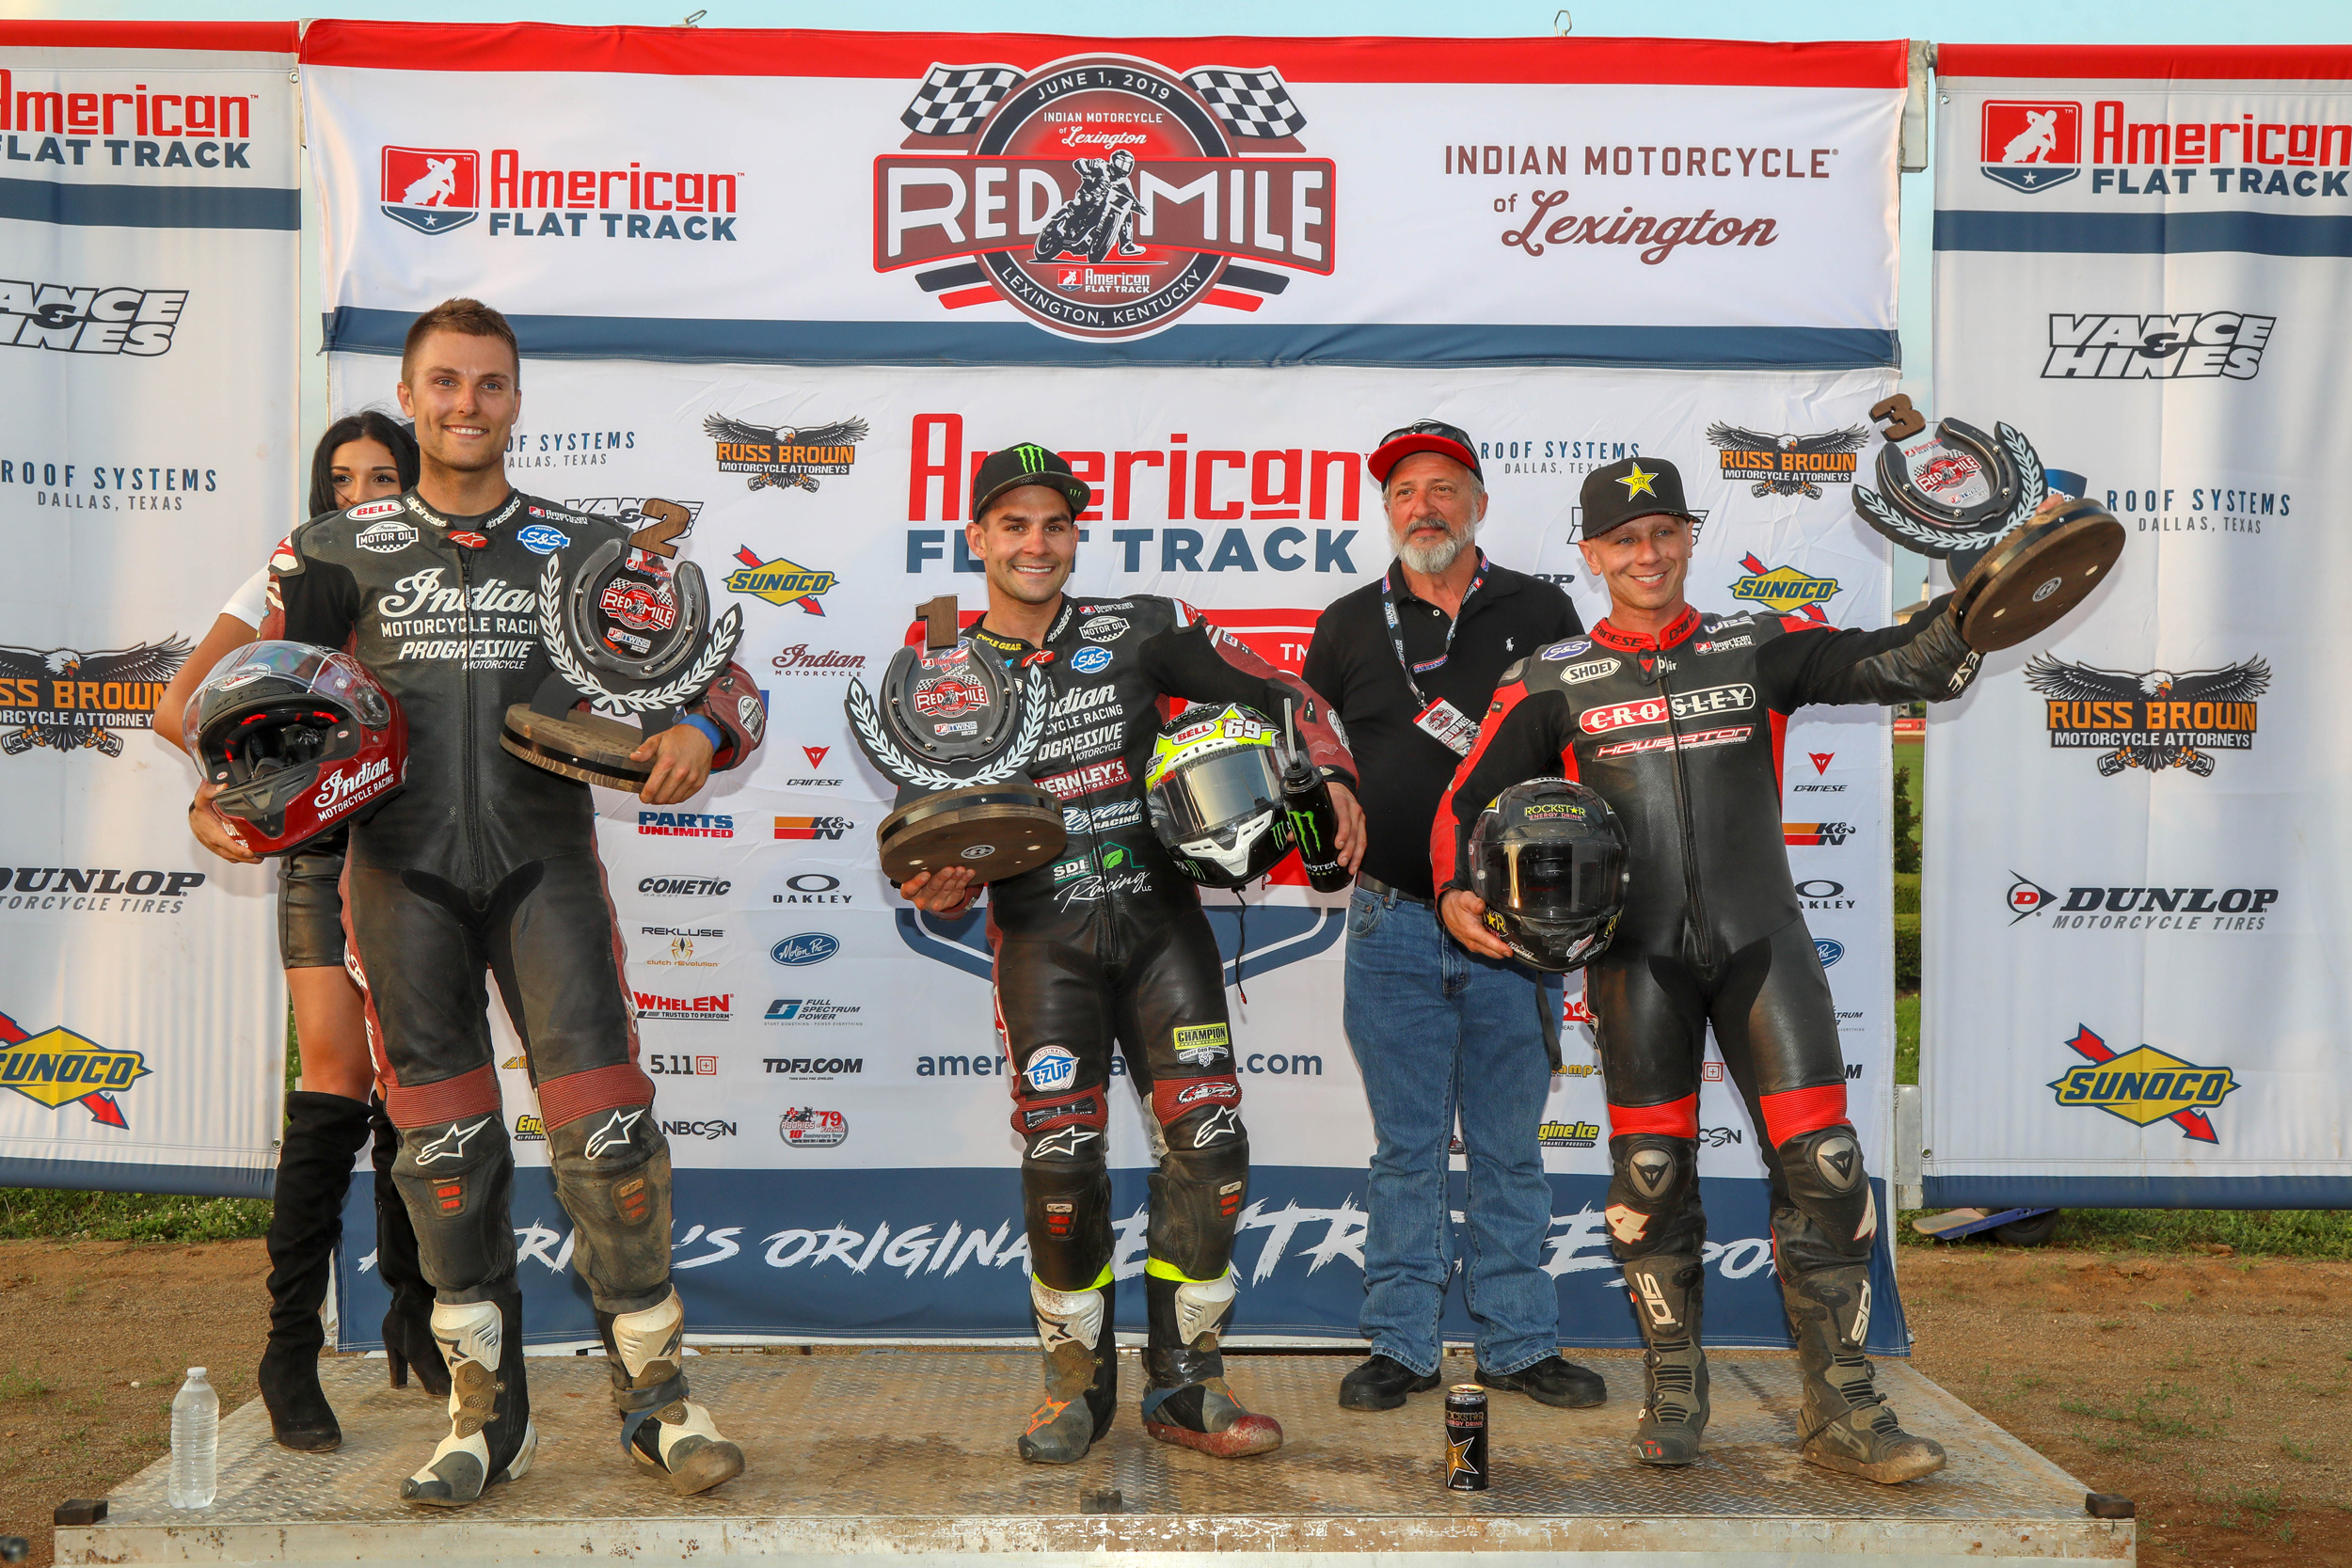 Indian Wrecking Crew Takes 1-2 at Indian Motorcycle of Lexington Red Mile